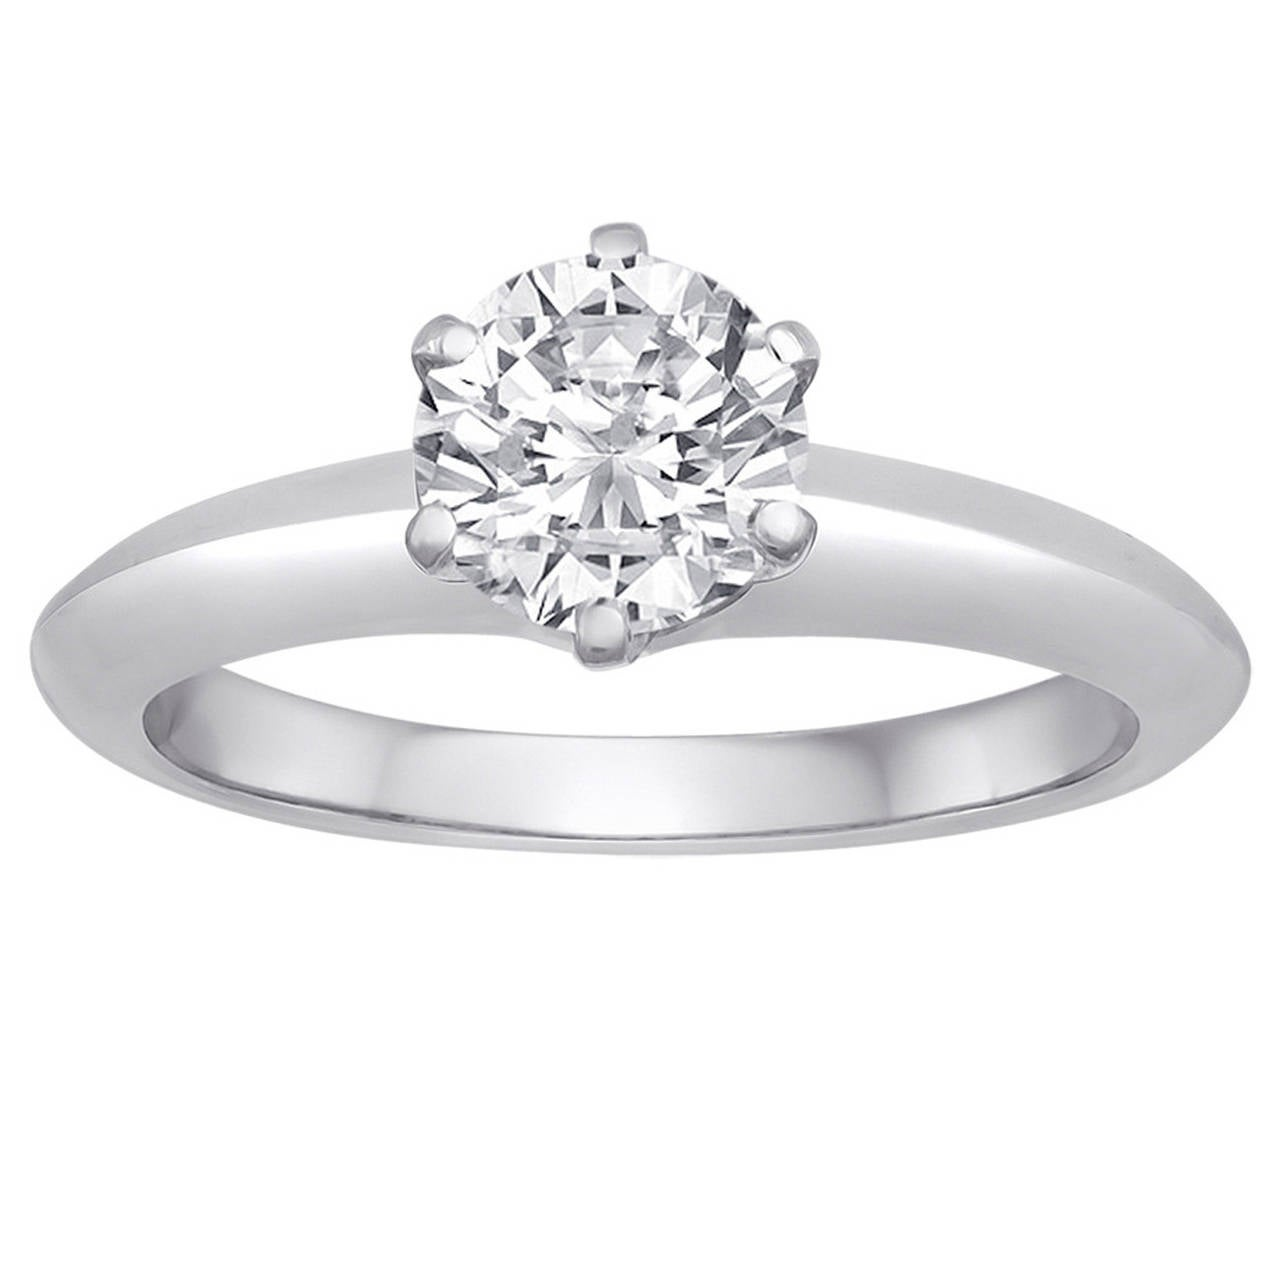 Tiffany engagement rings round cut